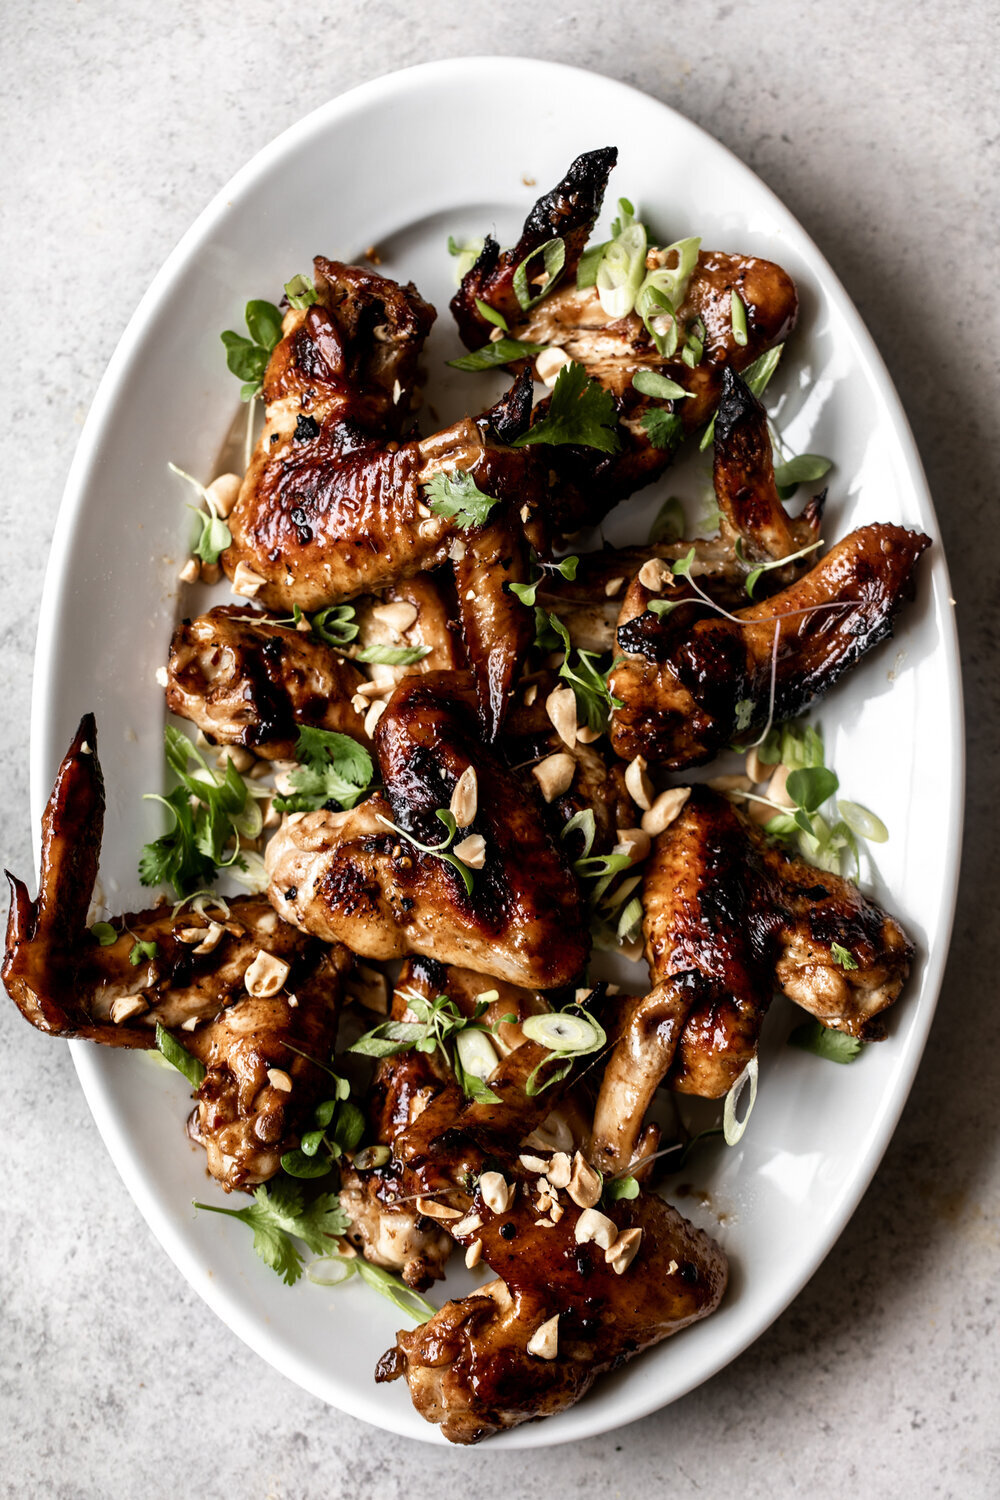 Garlic Soy Chicken Wings with Herbs and Peanuts